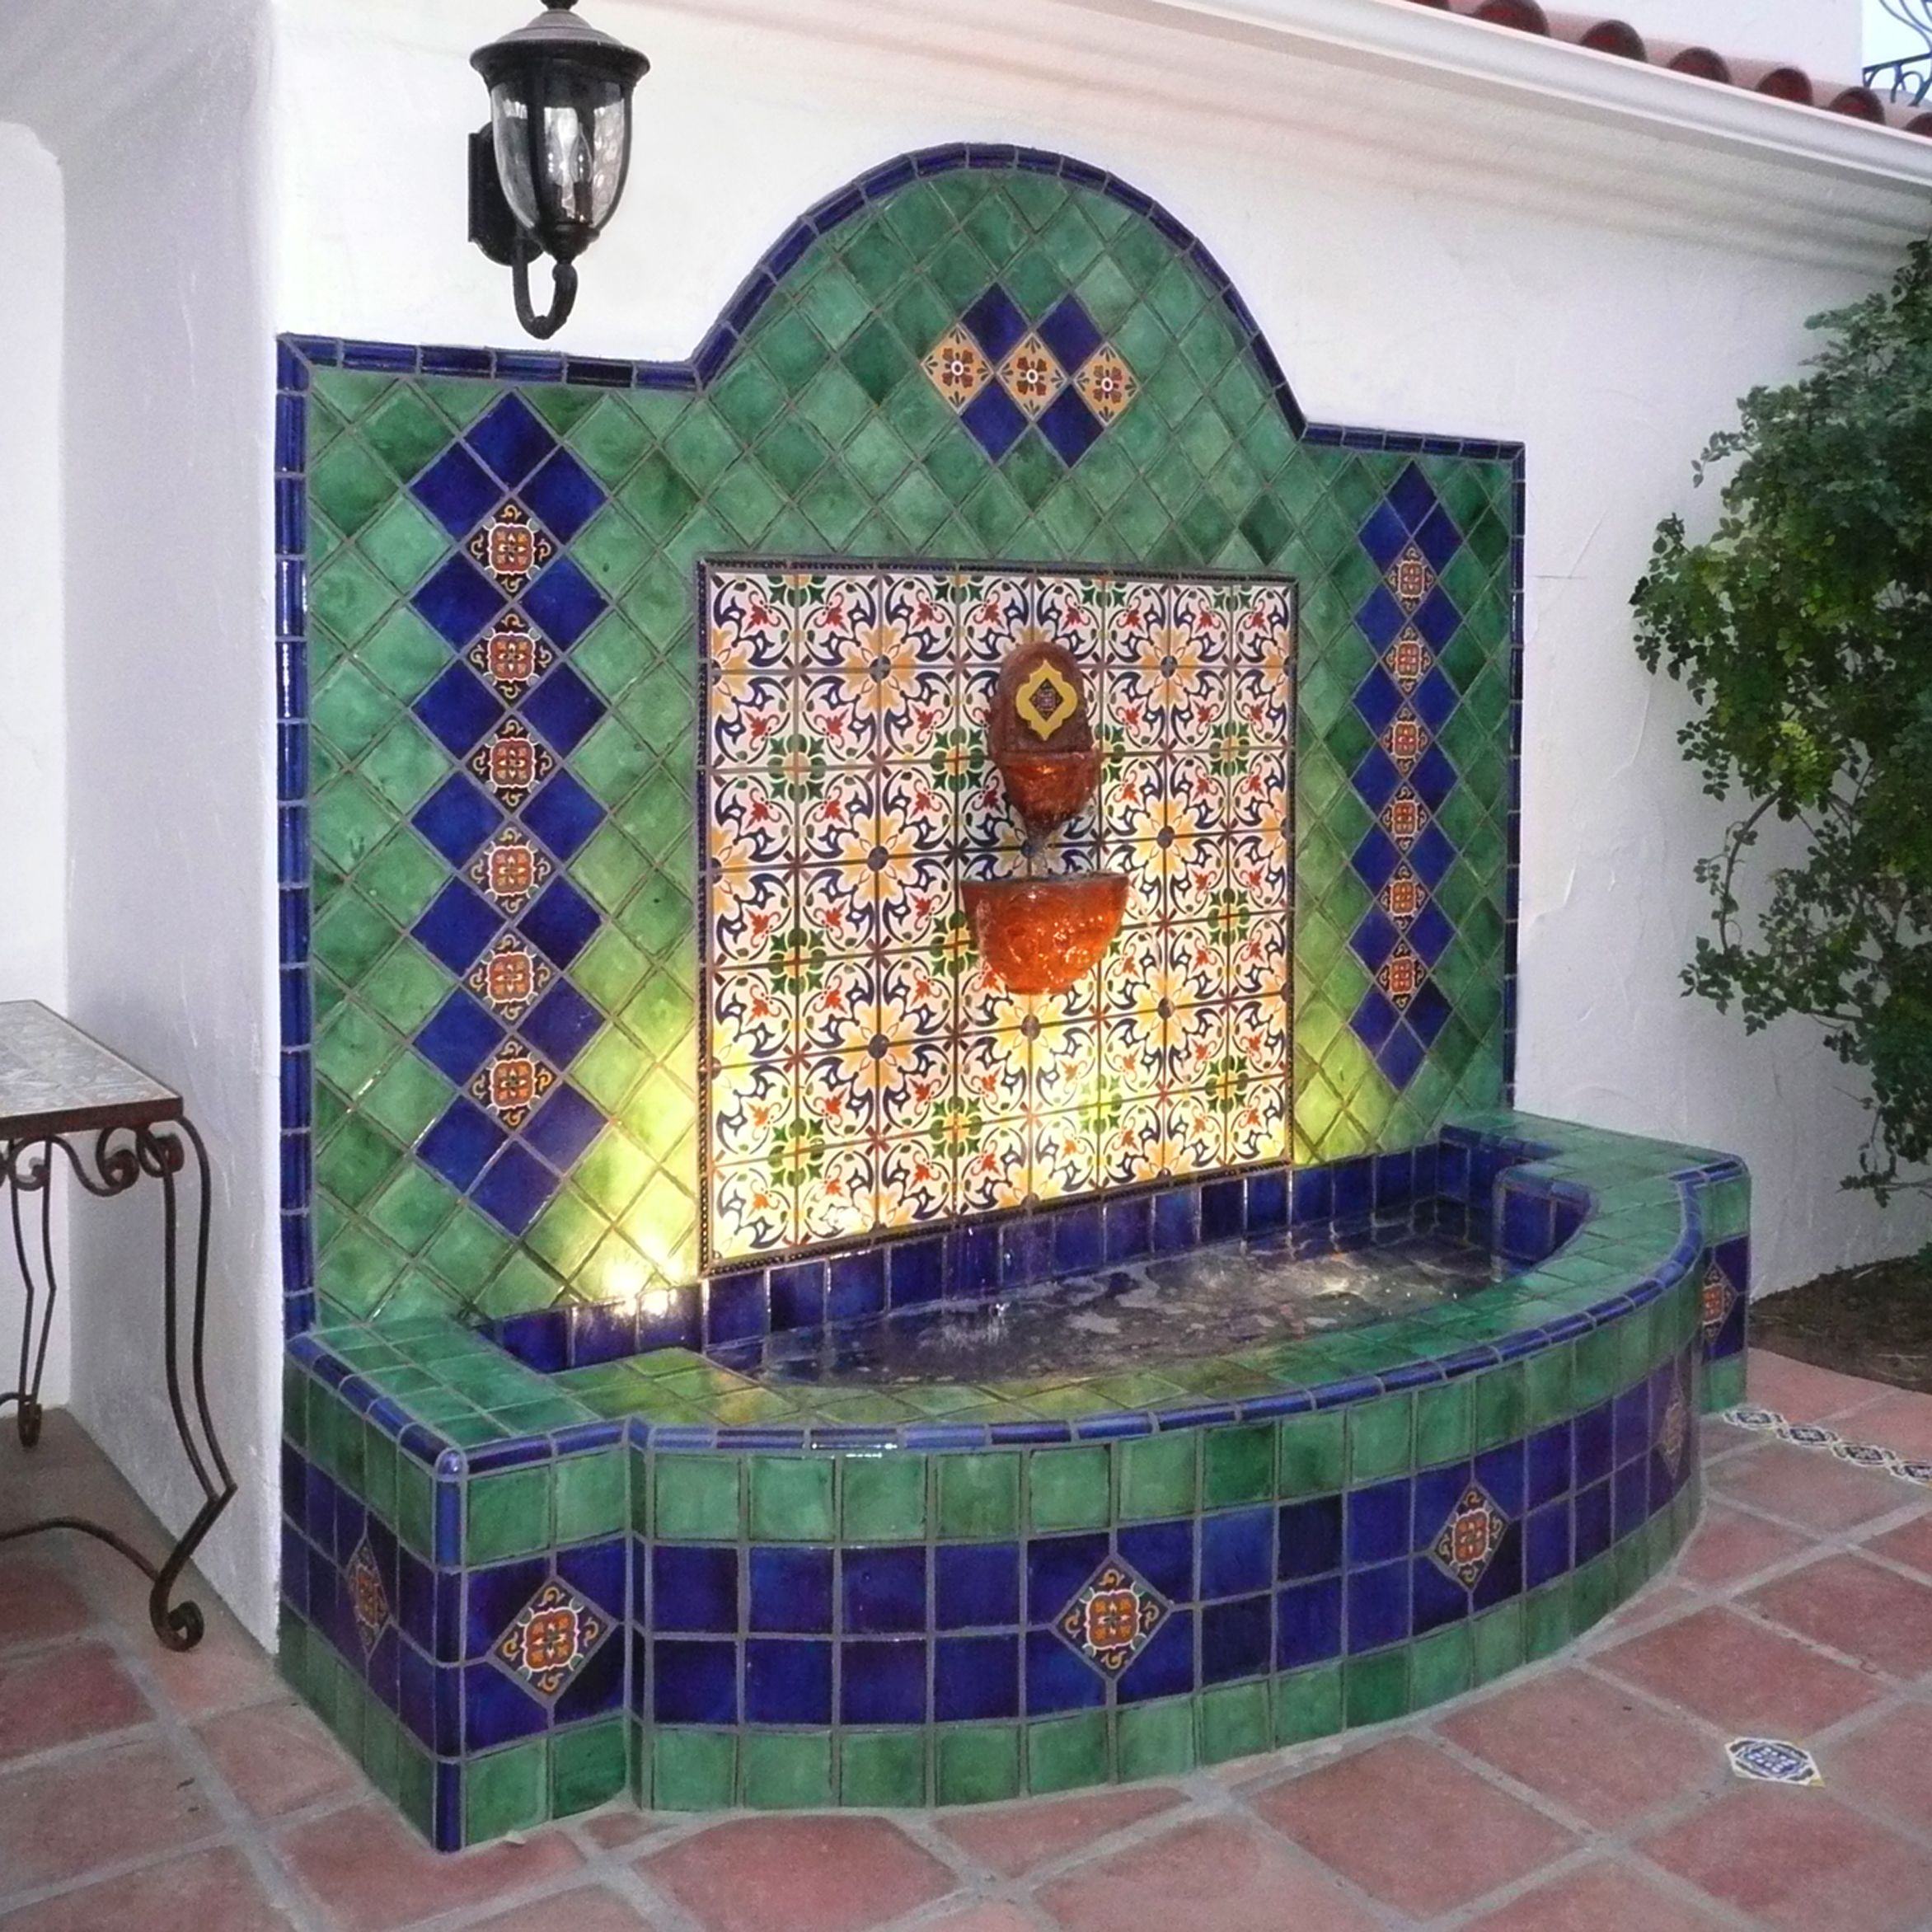 Wall fountain with lights using Mexican tiles San Clemente CA